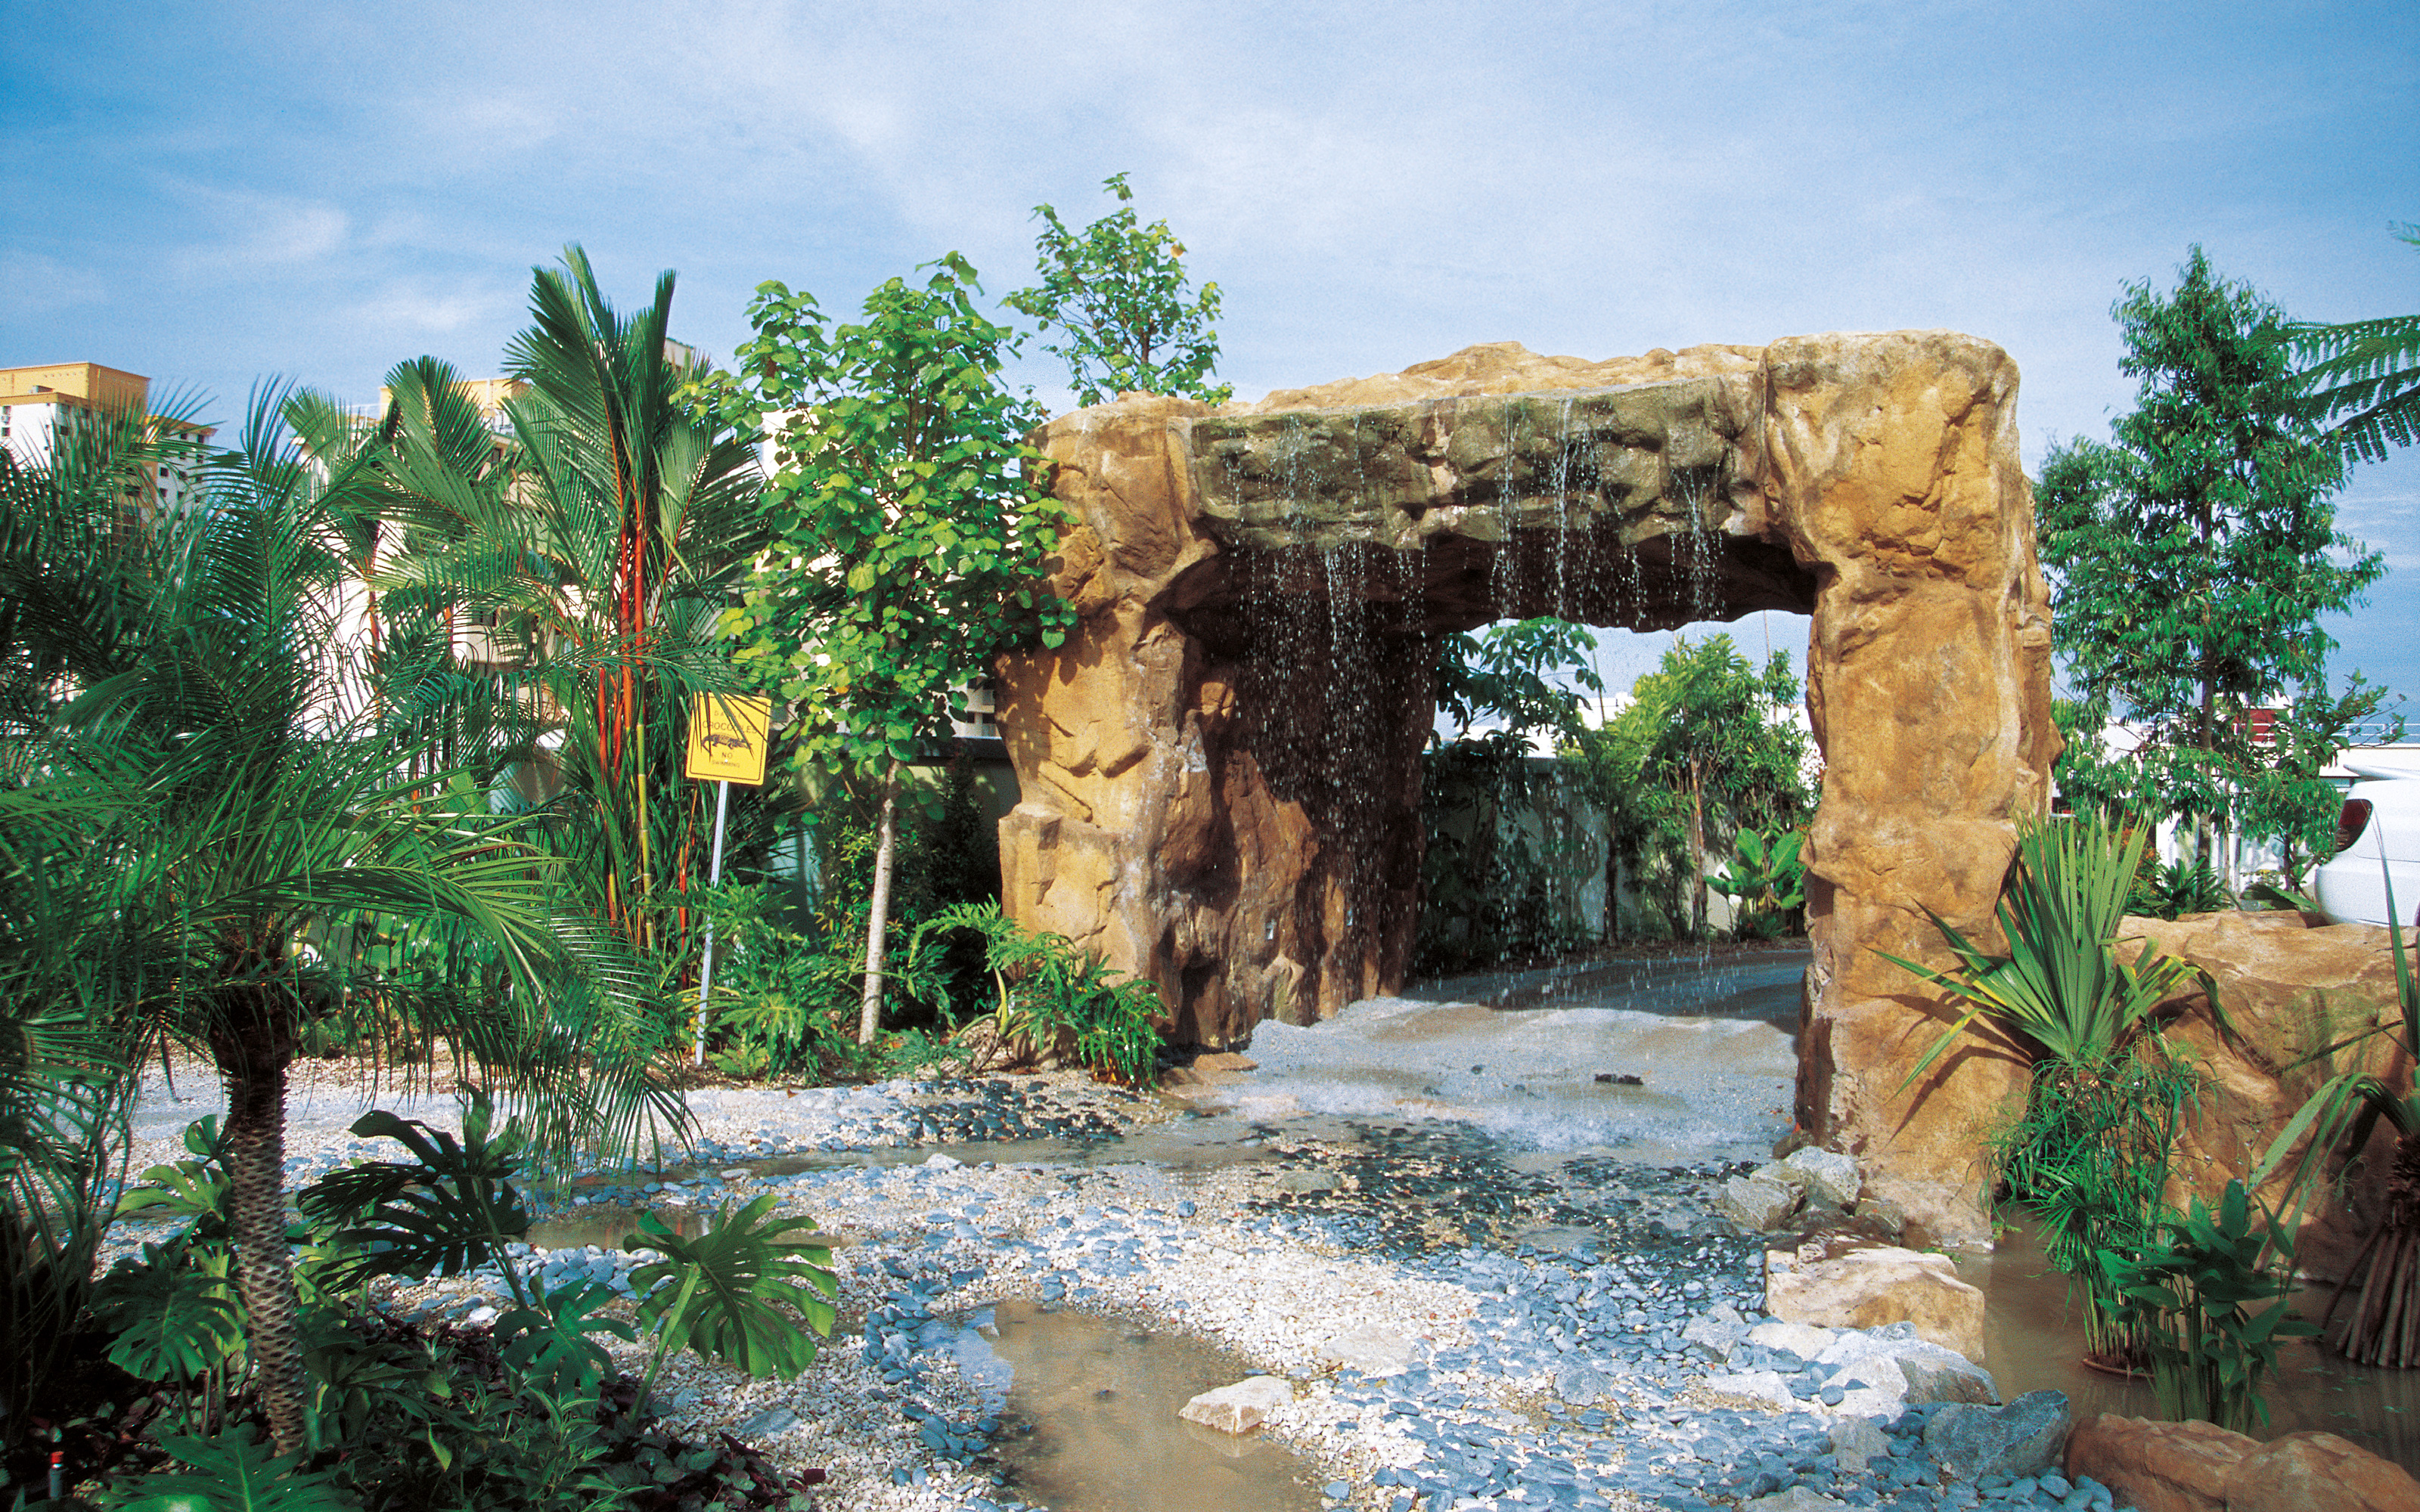 Archway with waterfall and tropical vegetation